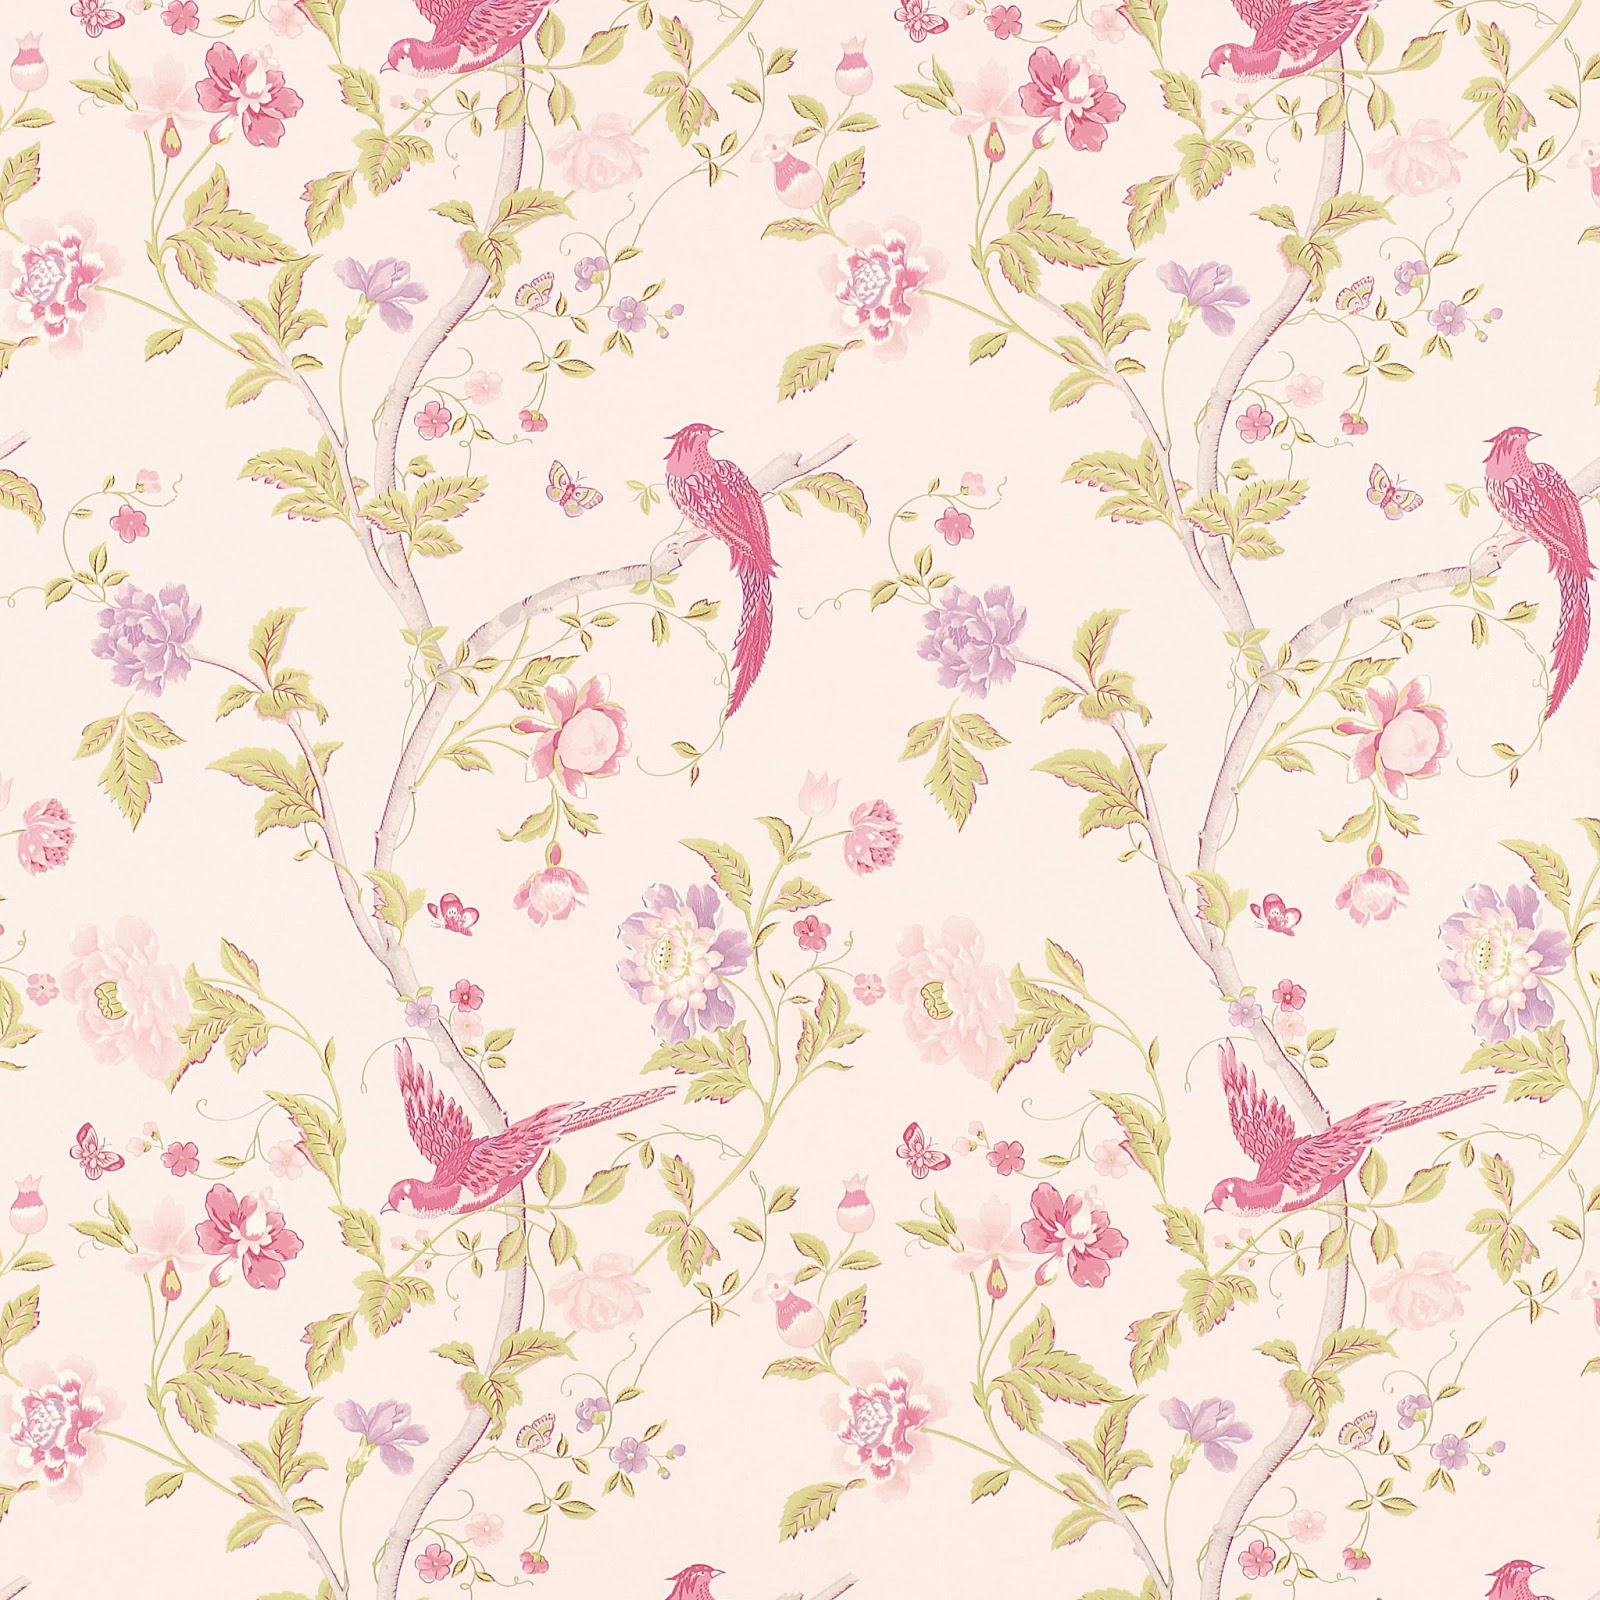 47 Vintage Floral Wallpaper On Wallpapersafari